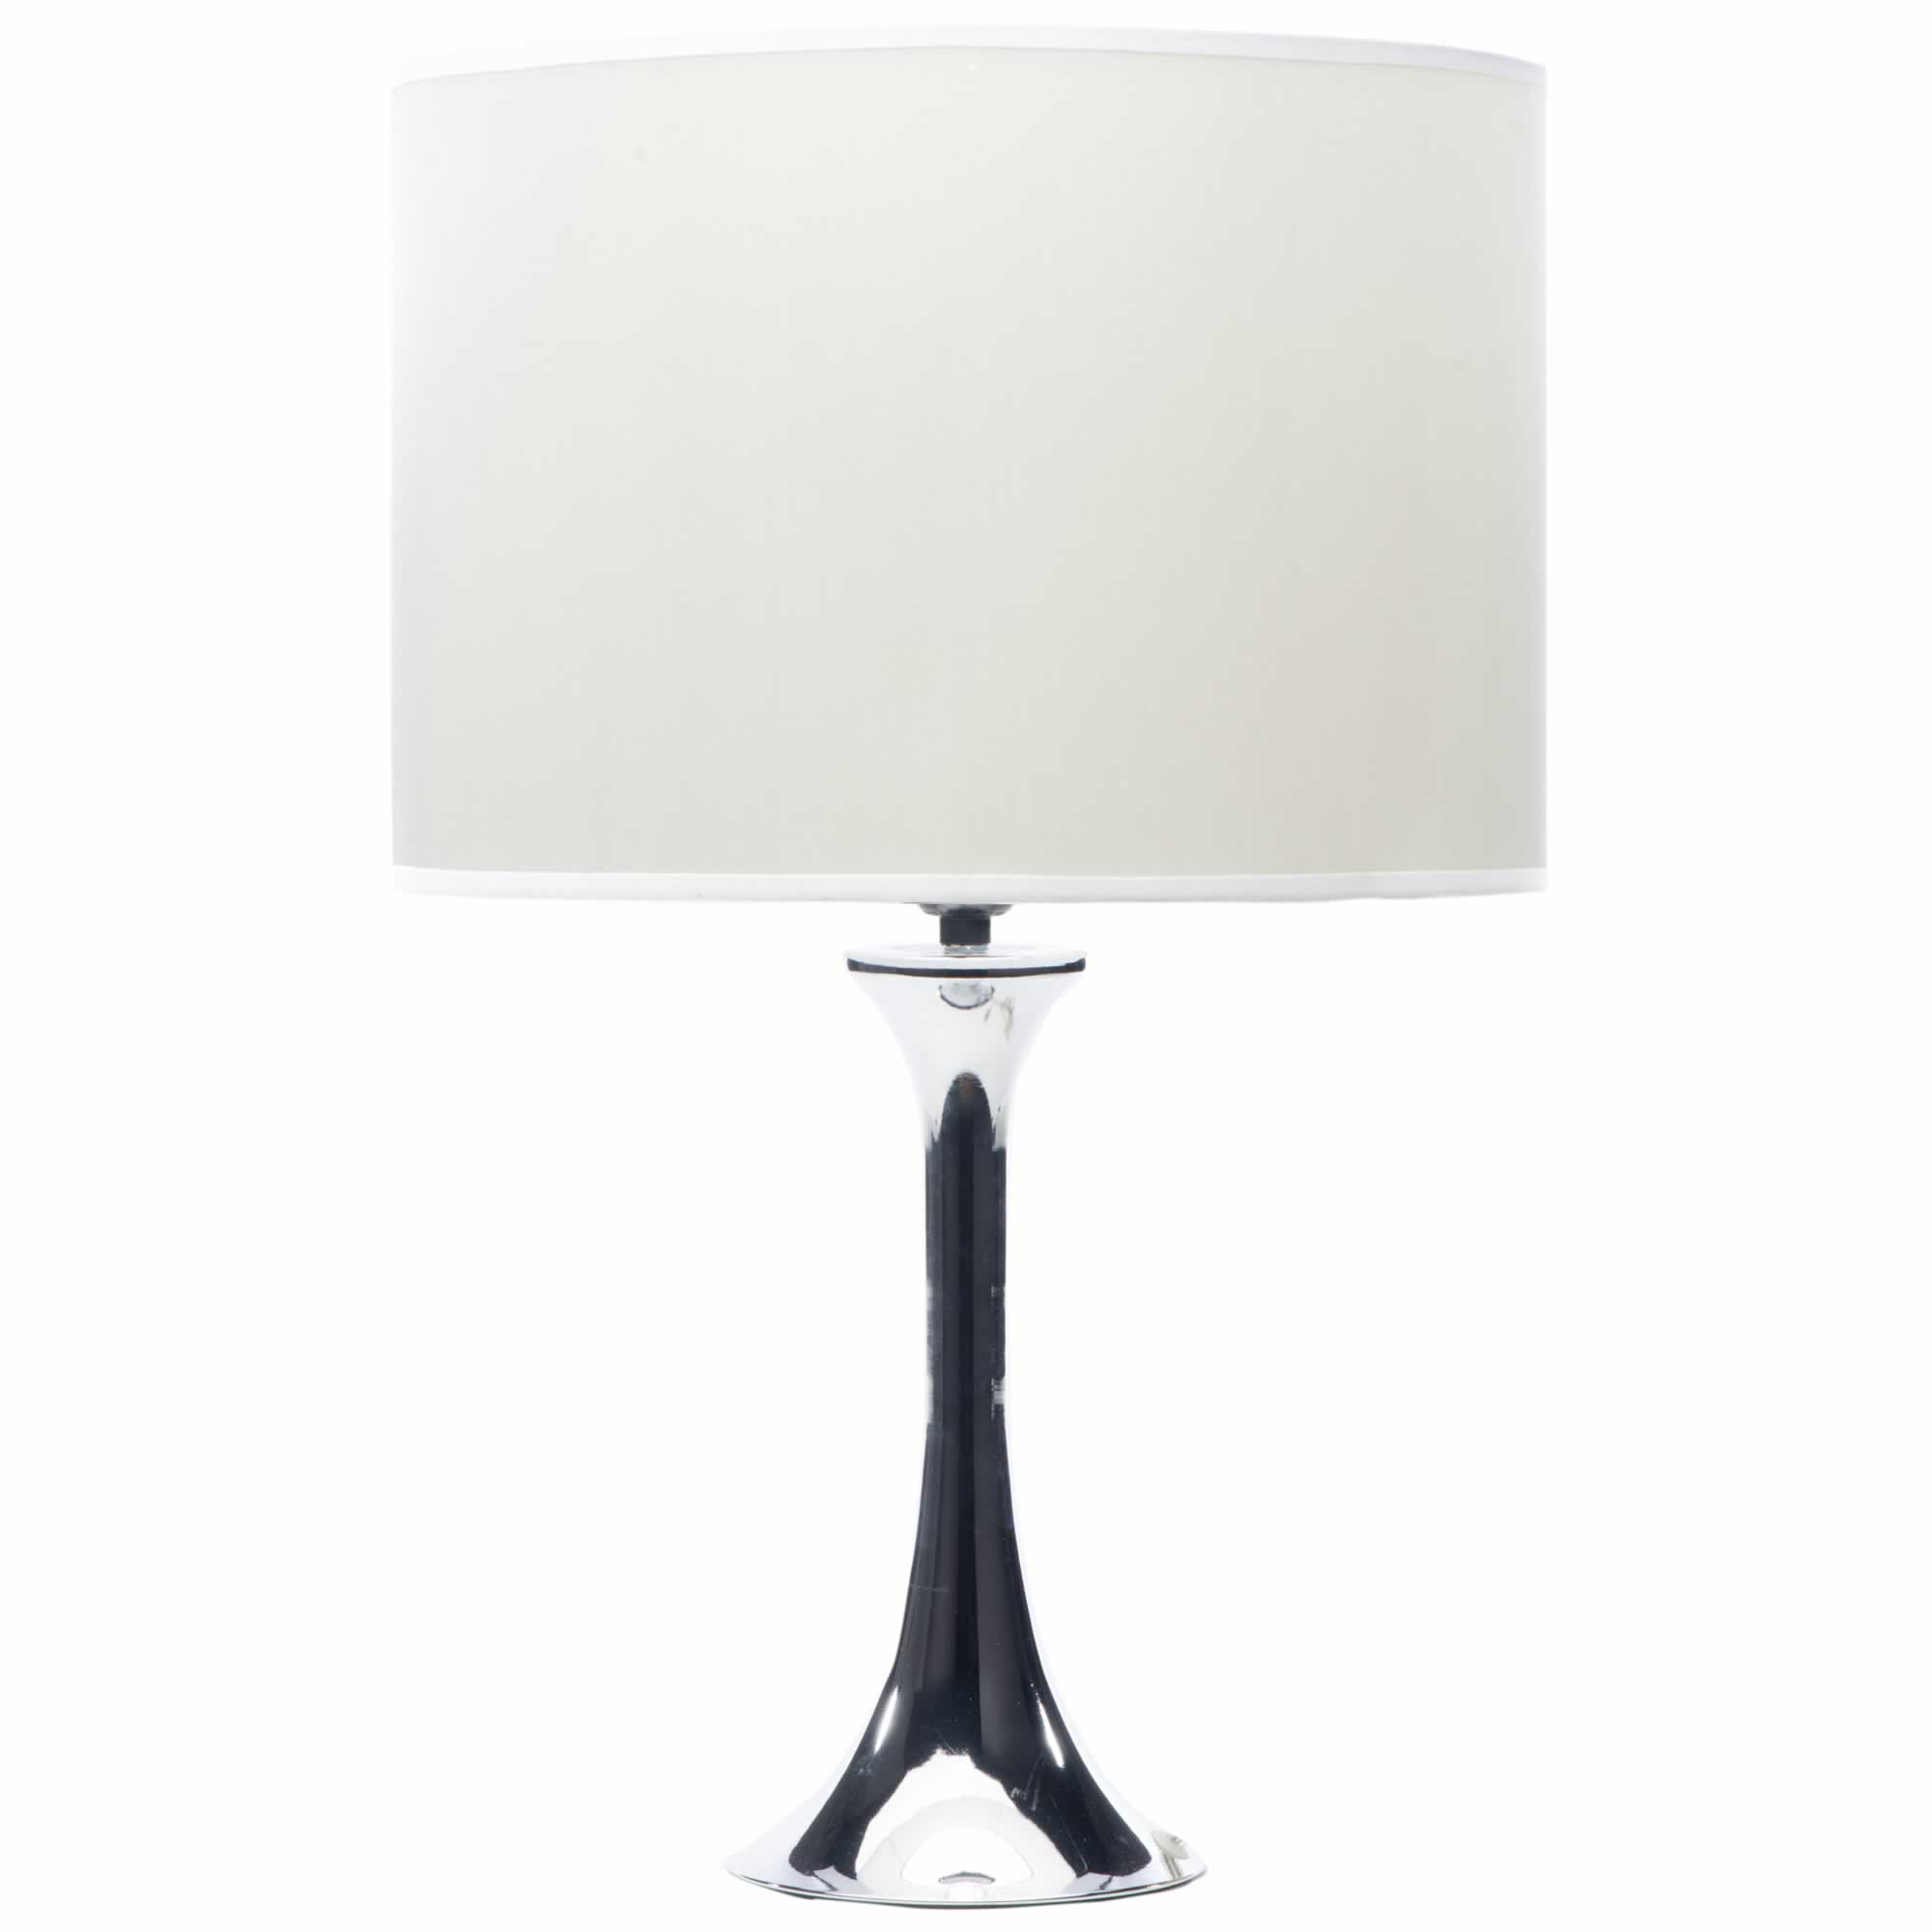 The Silver Bell Table Lamp - TL0004